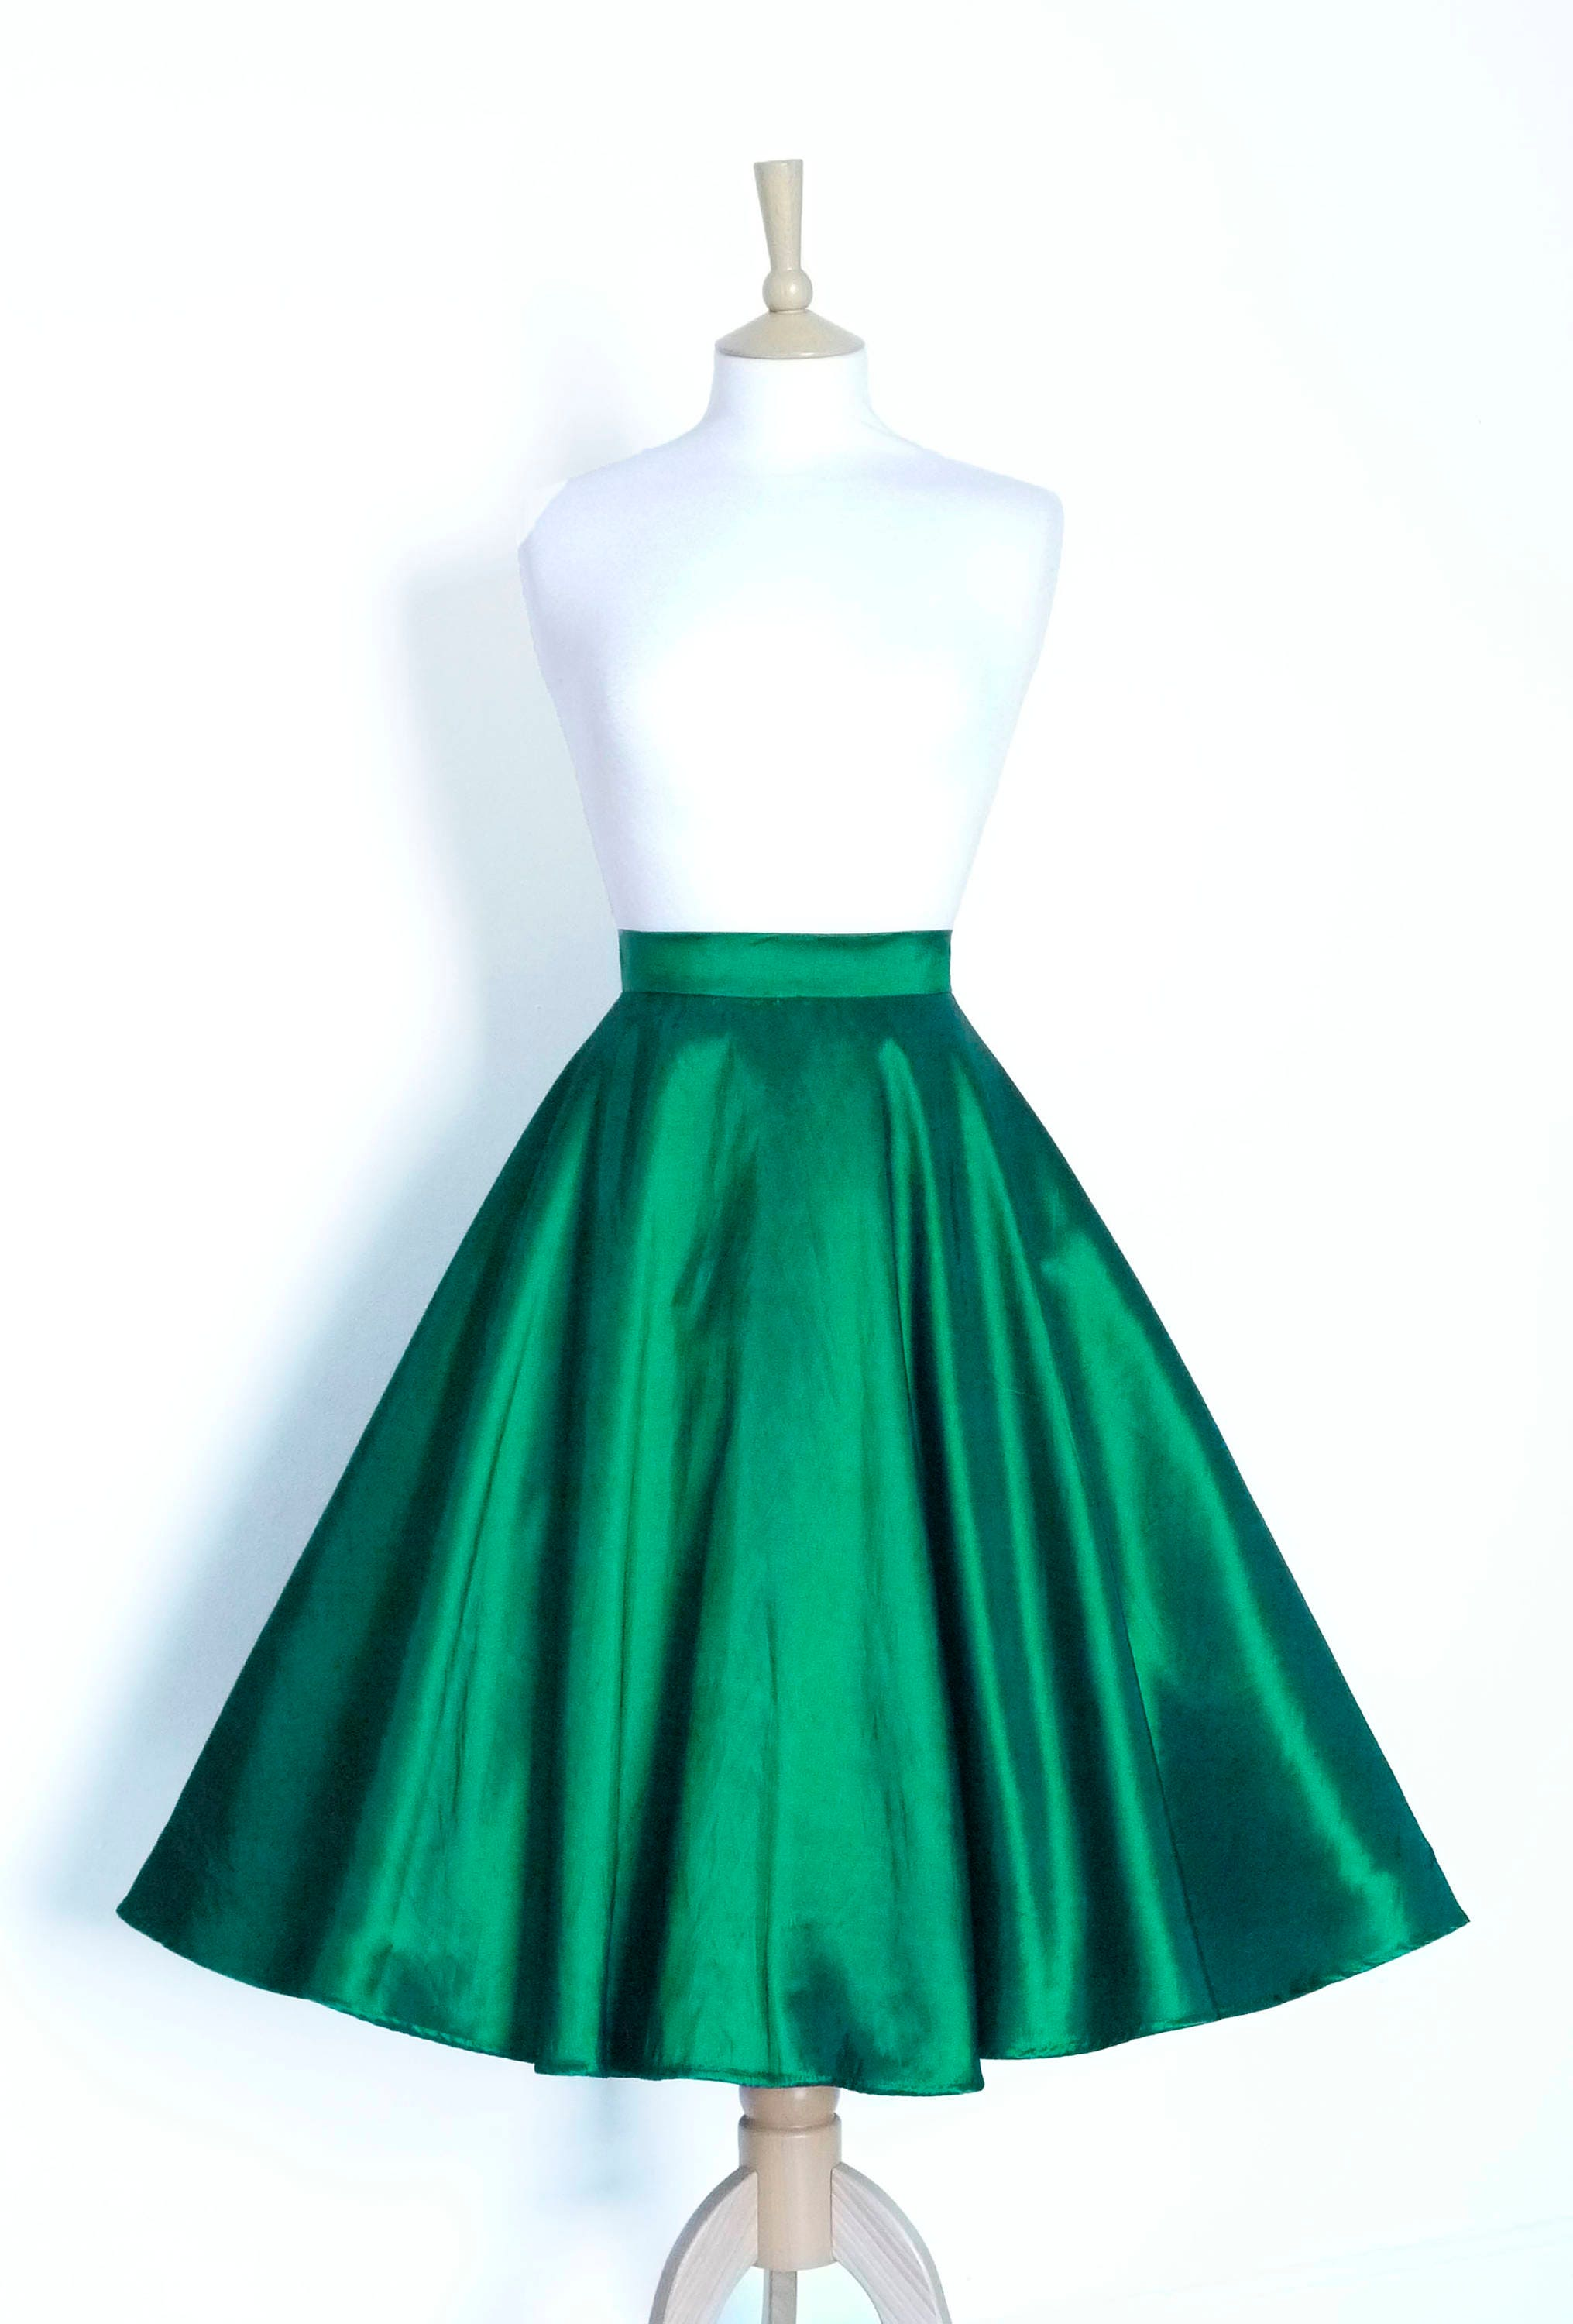 Emerald Green Taffeta Circle Skirt Made by Dig For Victory